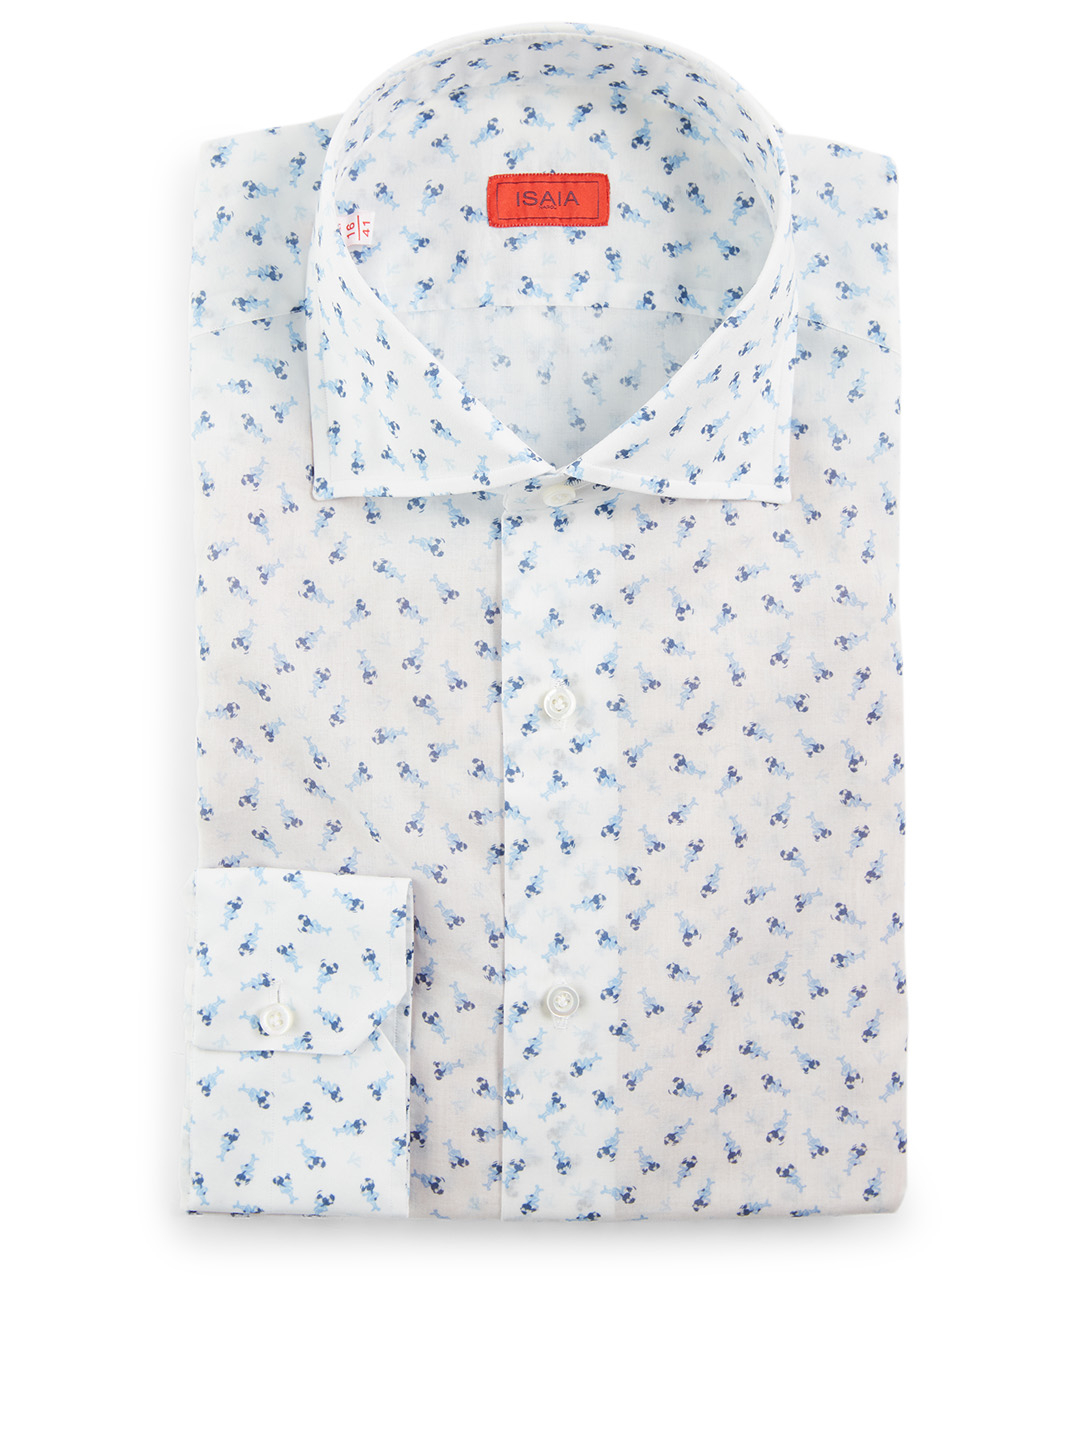 ISAIA Dress Shirt In Coralino Print Men's Blue